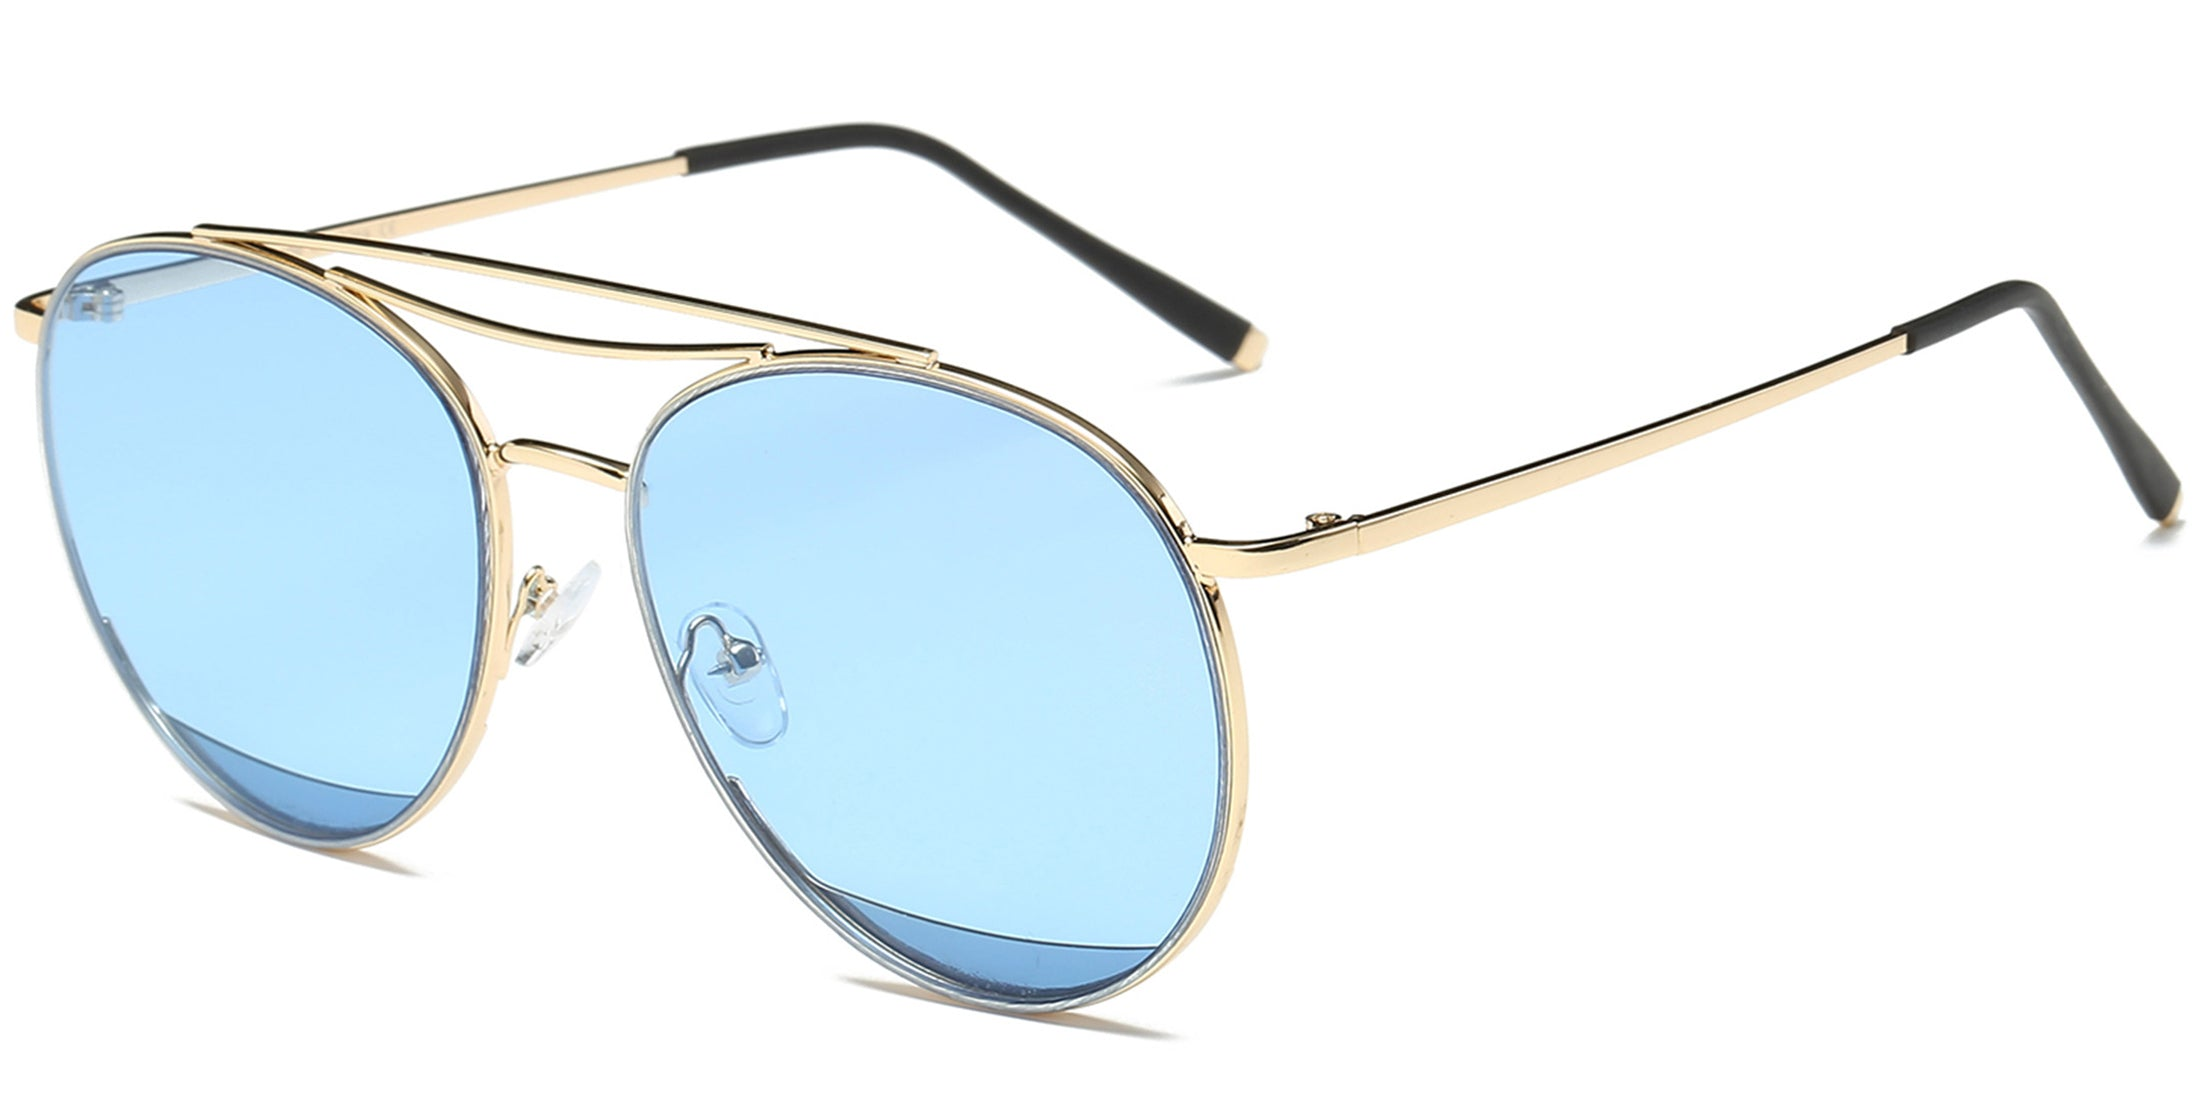 Akcessoryz-Women round blue lens with gold frame sunglasses